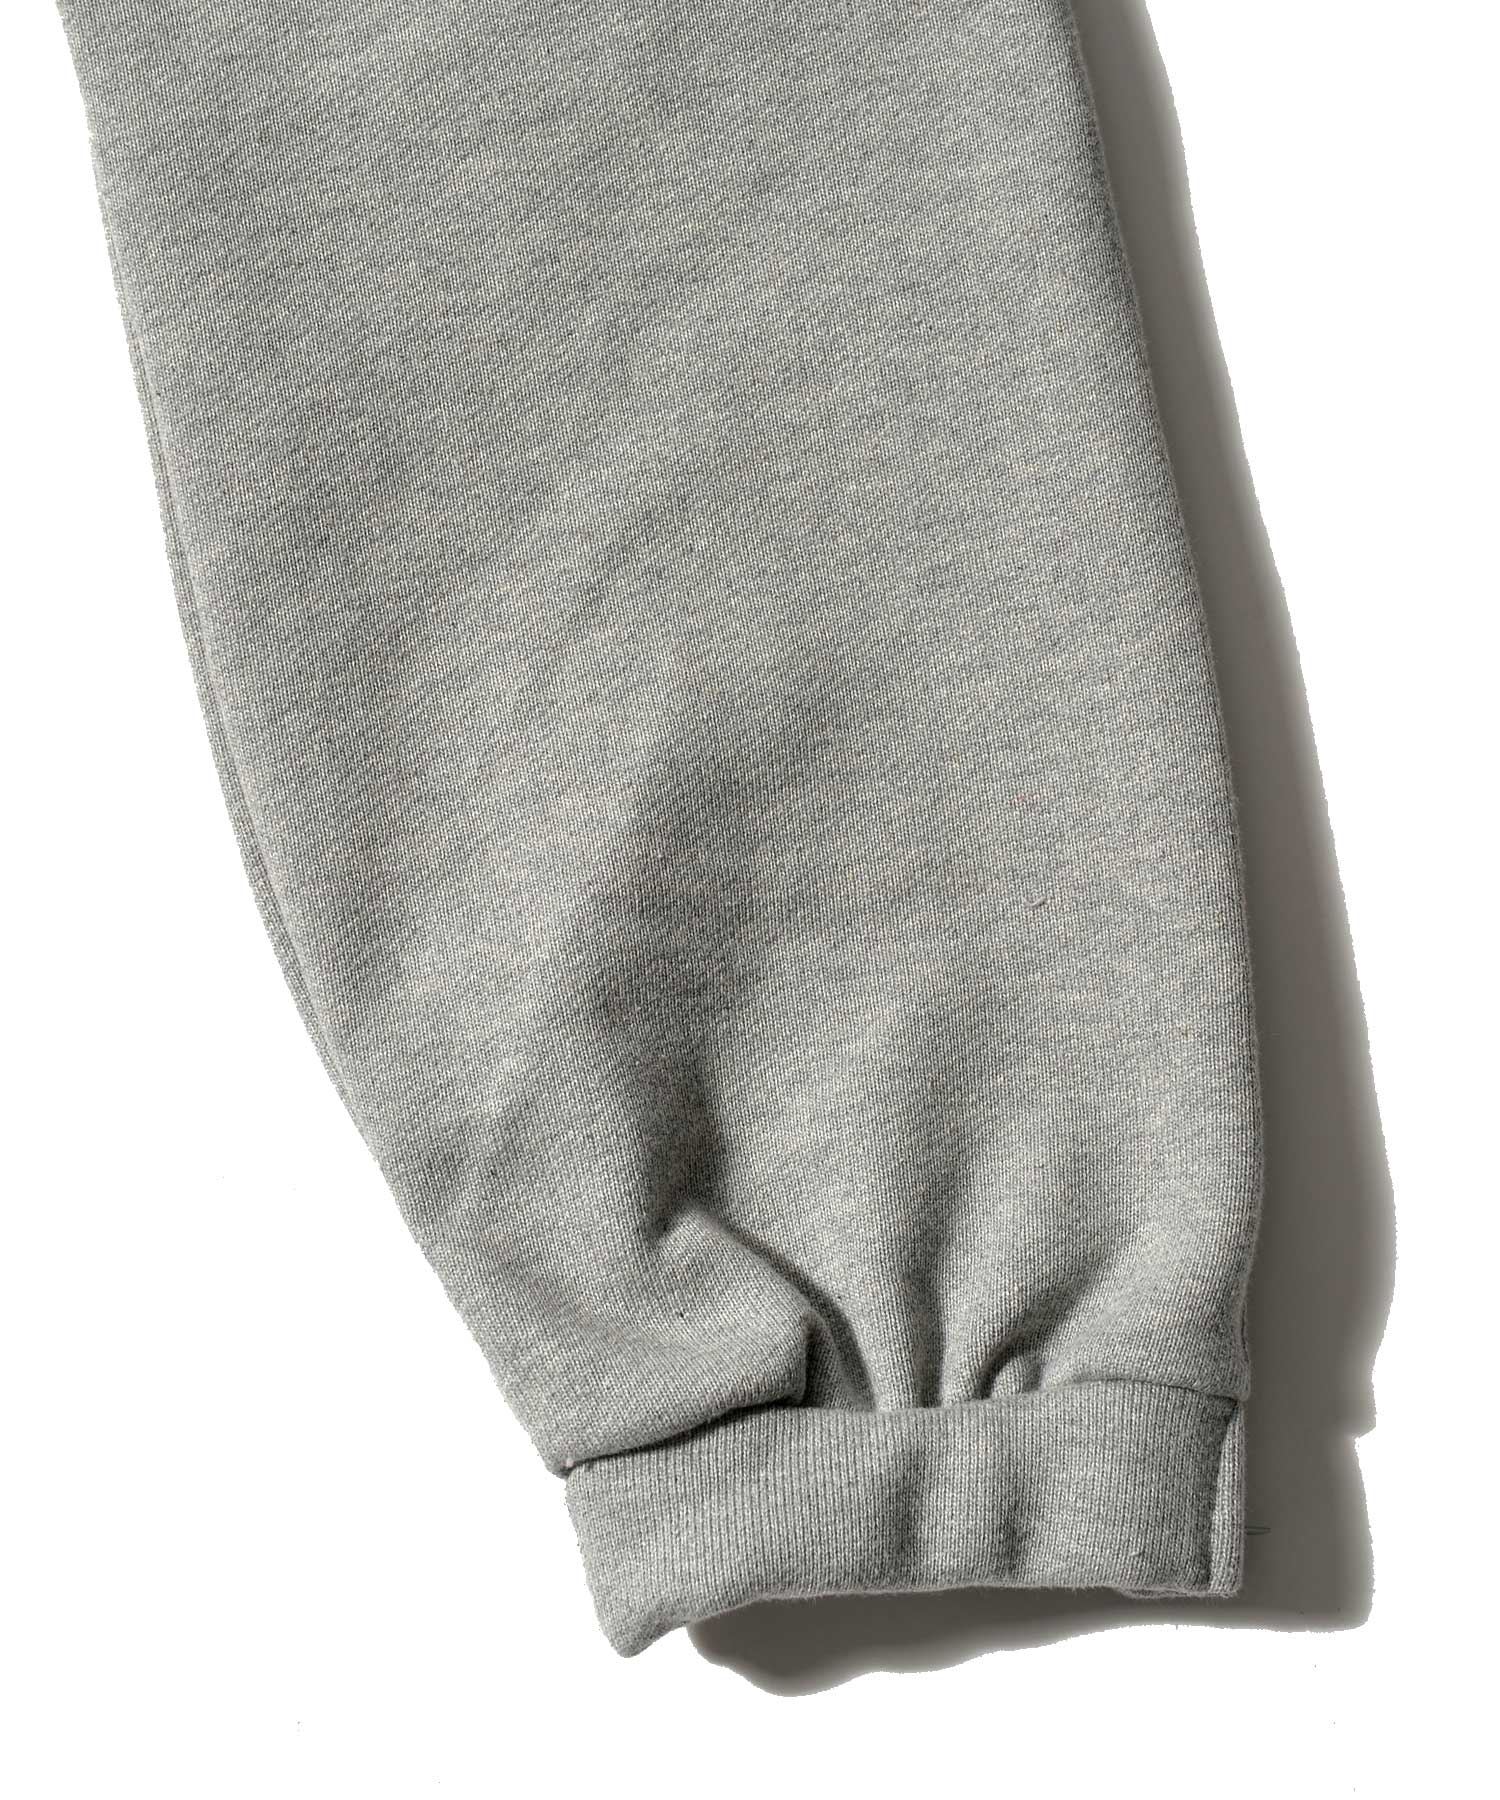 Heavy ounce hem zip sweat pants